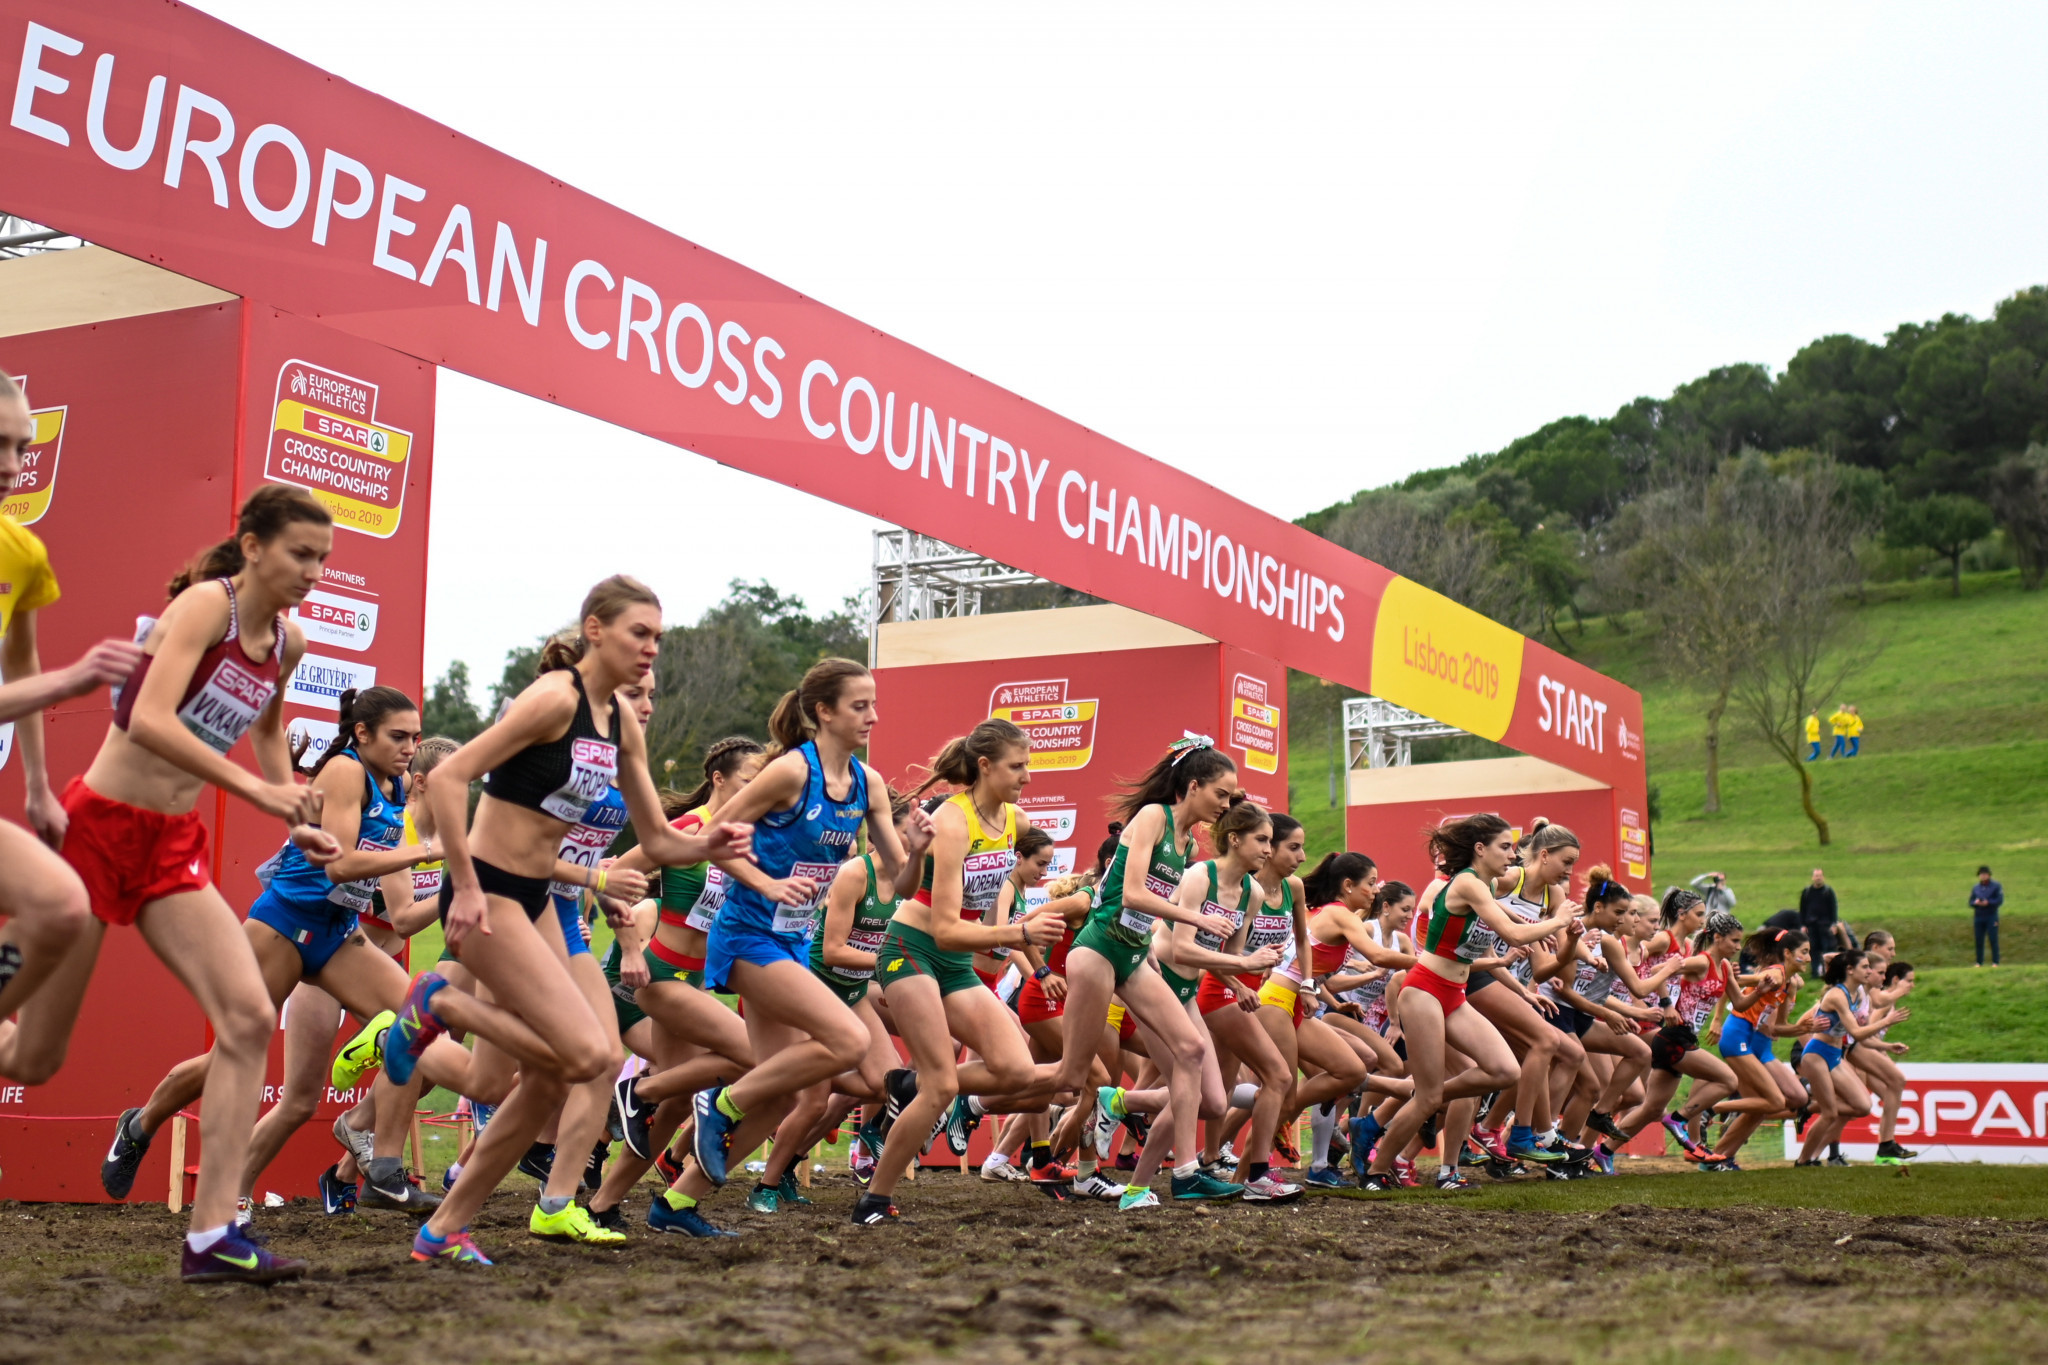 European Cross Country Championships in Dublin cancelled due to COVID-19 uncertainties